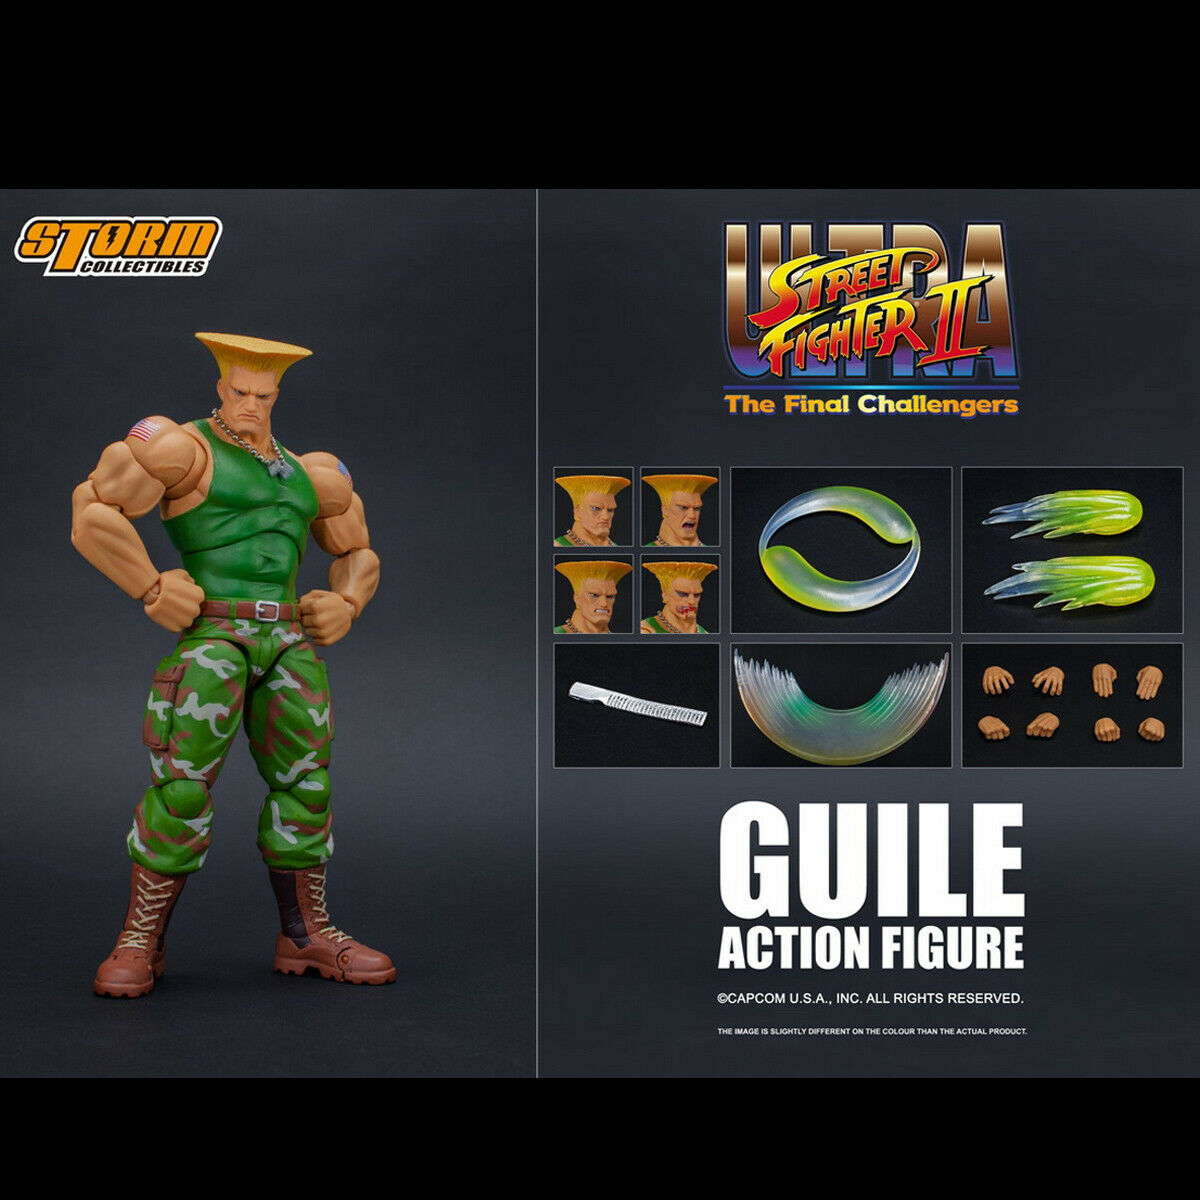 Storm Toys 1 12 Ultra Street Fighter II The Final Challenger GUILE Figure Model